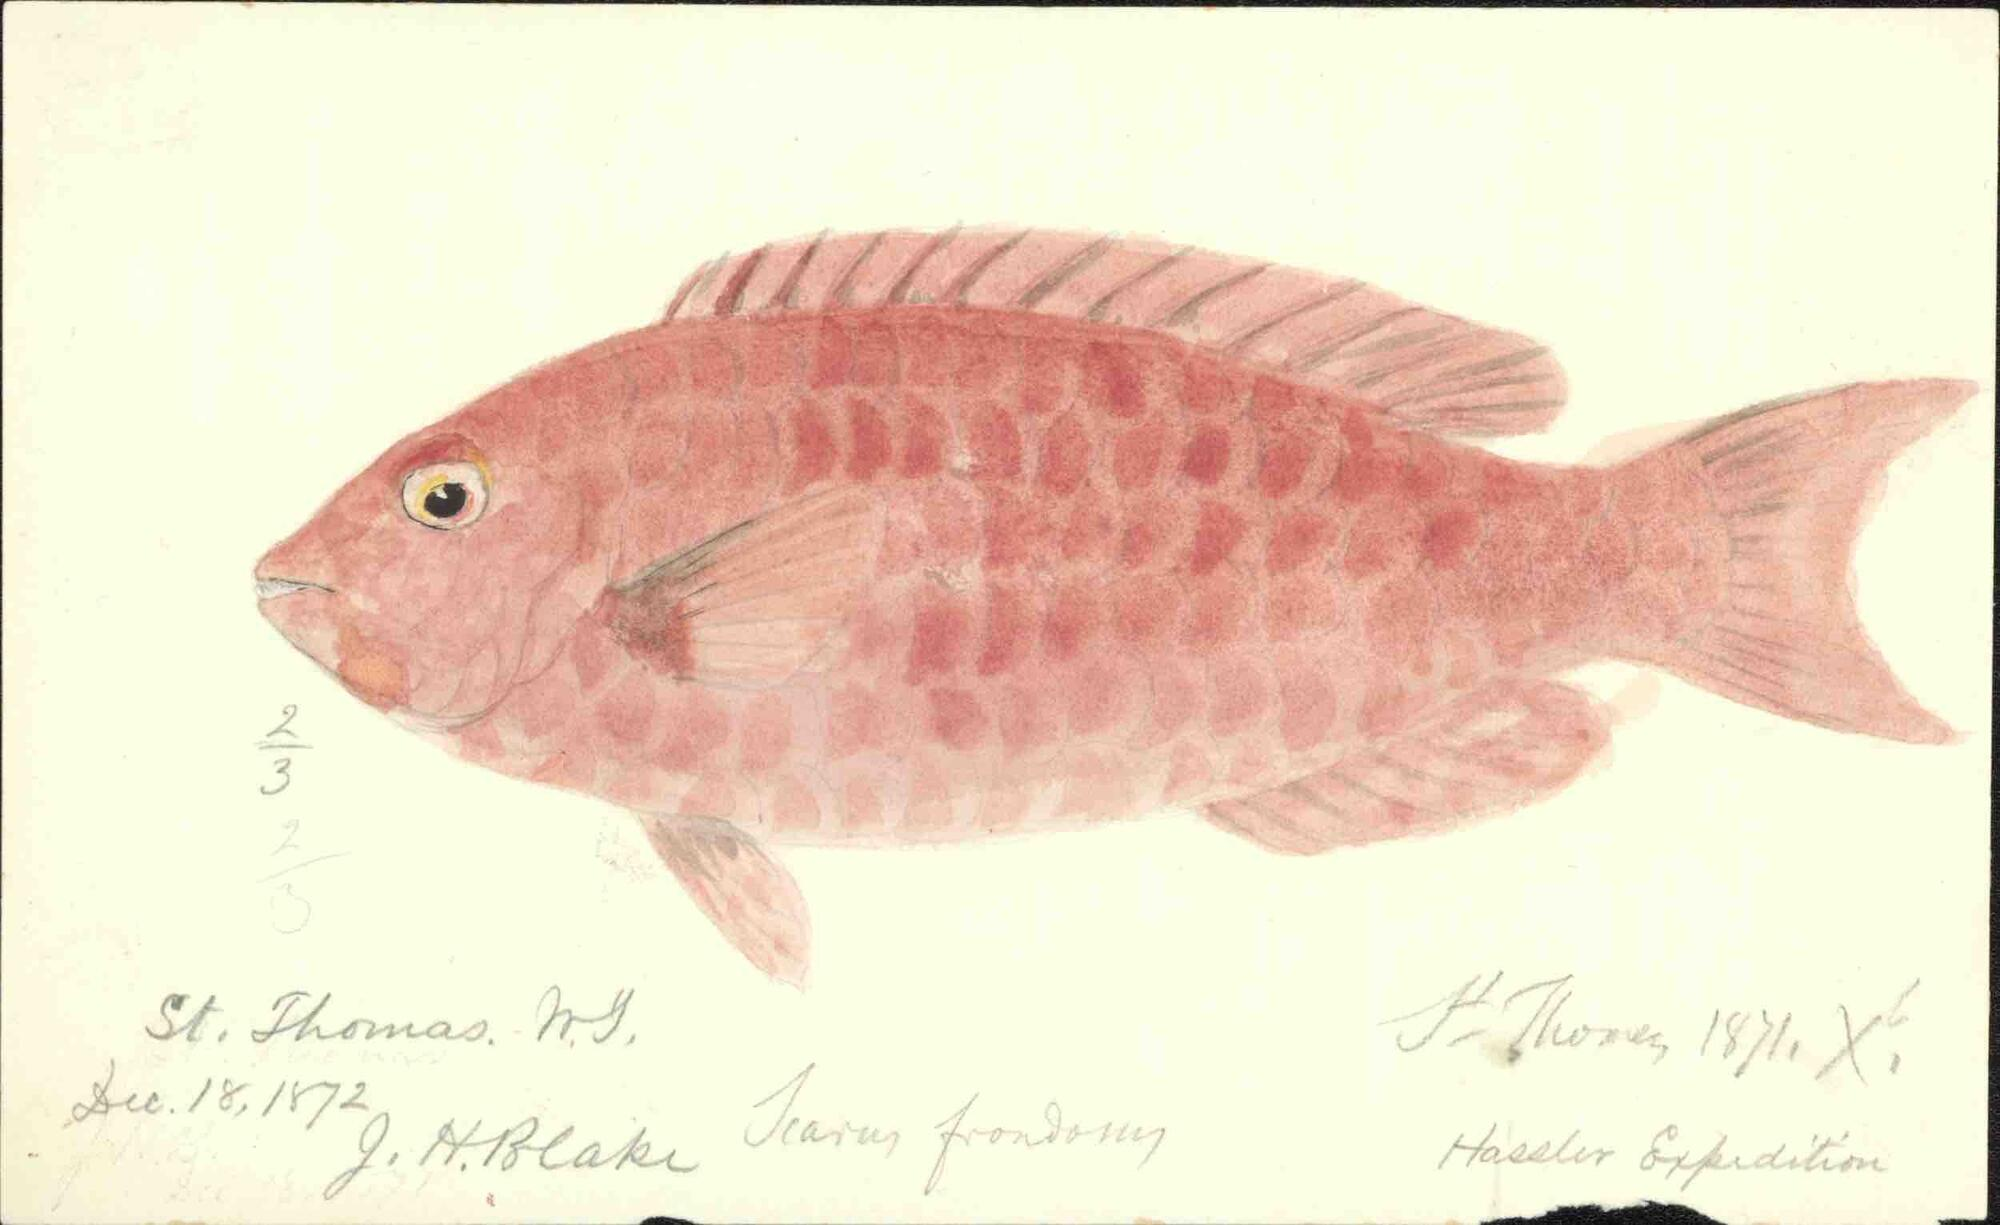 watercolor of a red scaled fish, its eye peering toward the viewer dated December 18th 1872